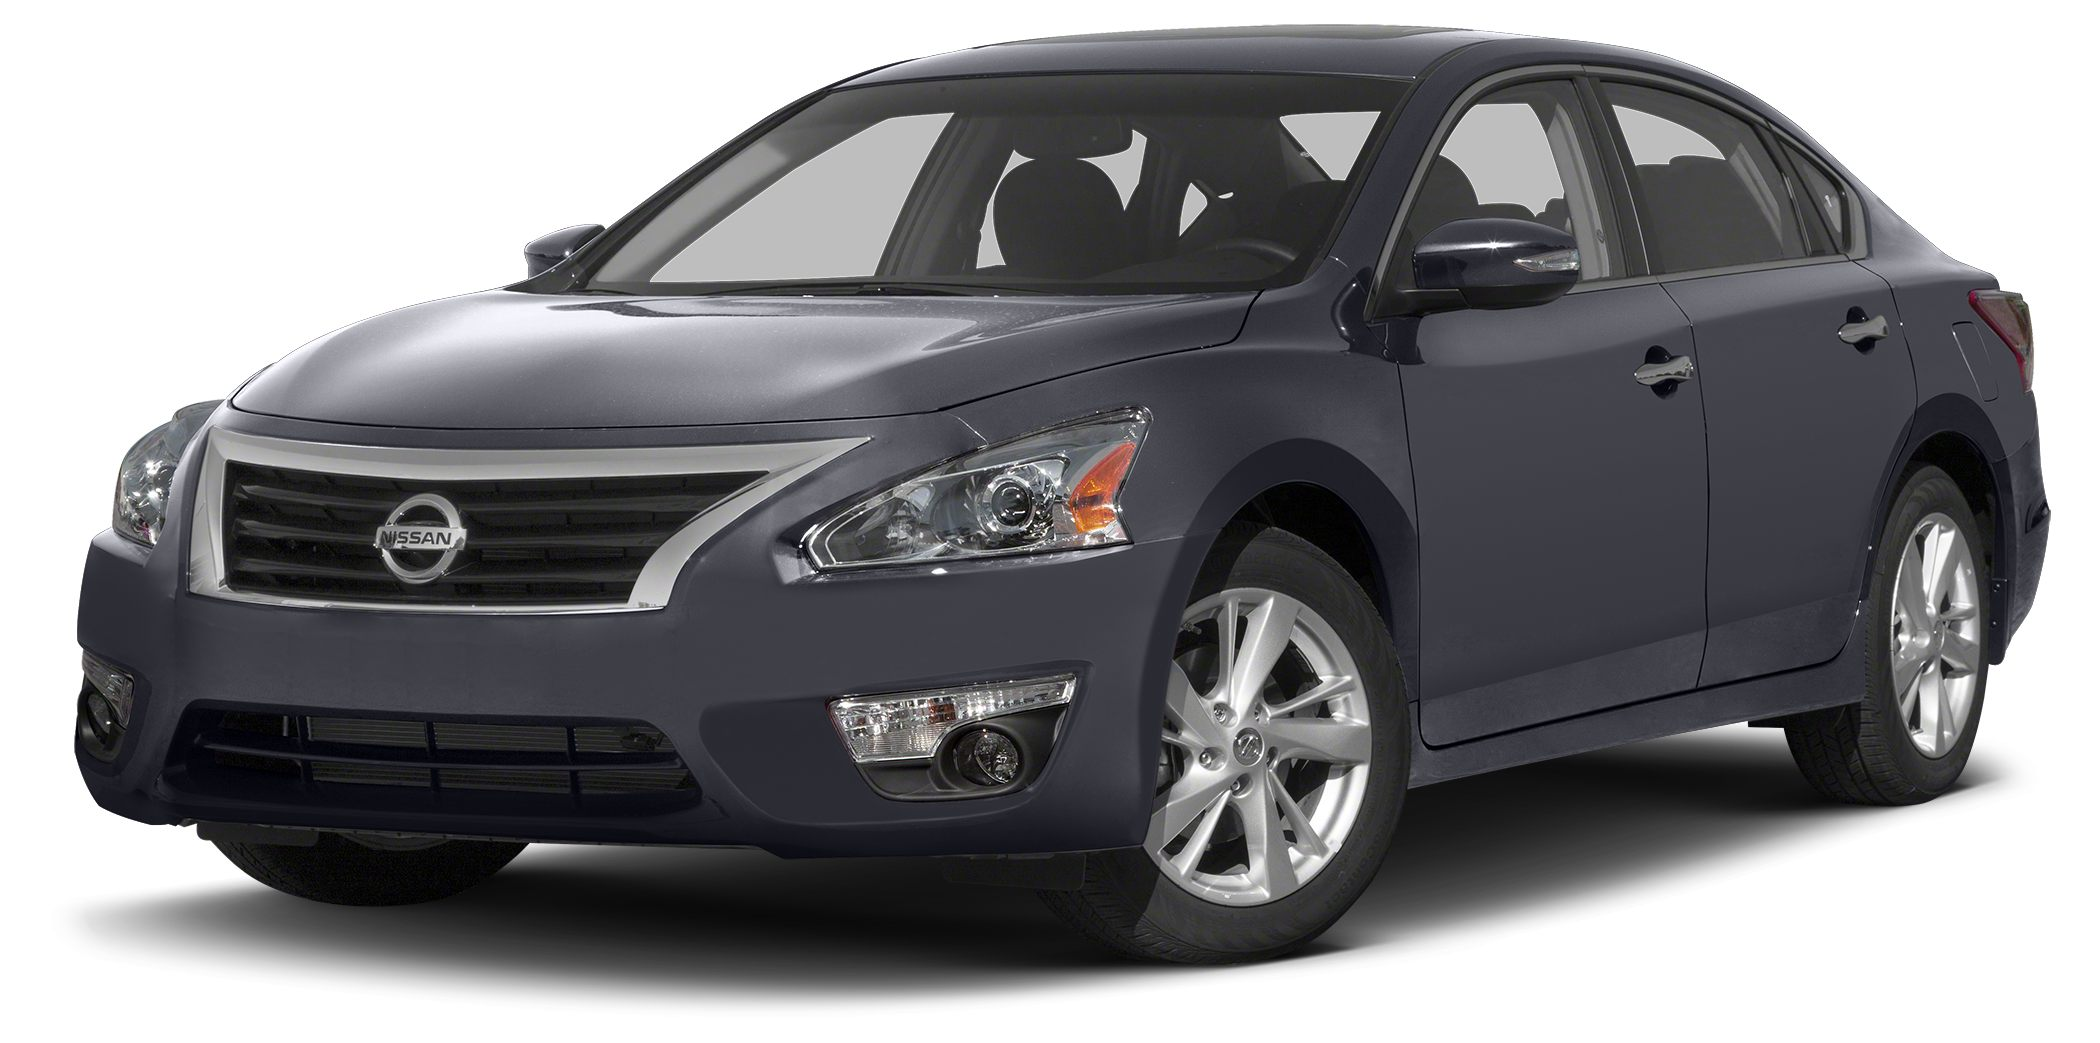 2013 Nissan Altima 25 SL ONLY 23405 Miles PRICED TO MOVE 2300 below NADA Retail FUEL EFFICI